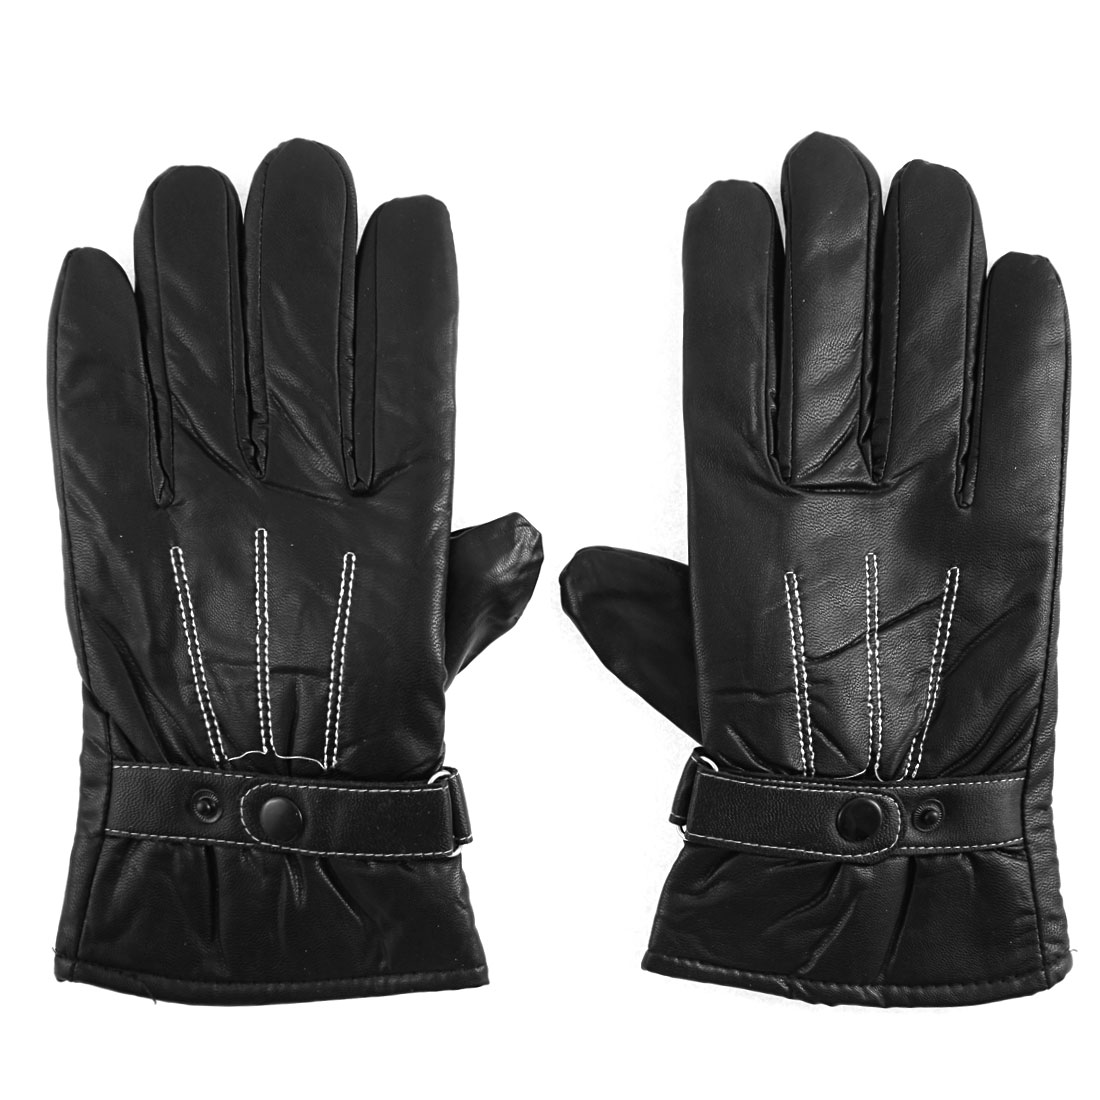 Unique Bargains Unisex Winter Leather Motorcycle Full Finger Warm Driving Gloves Black